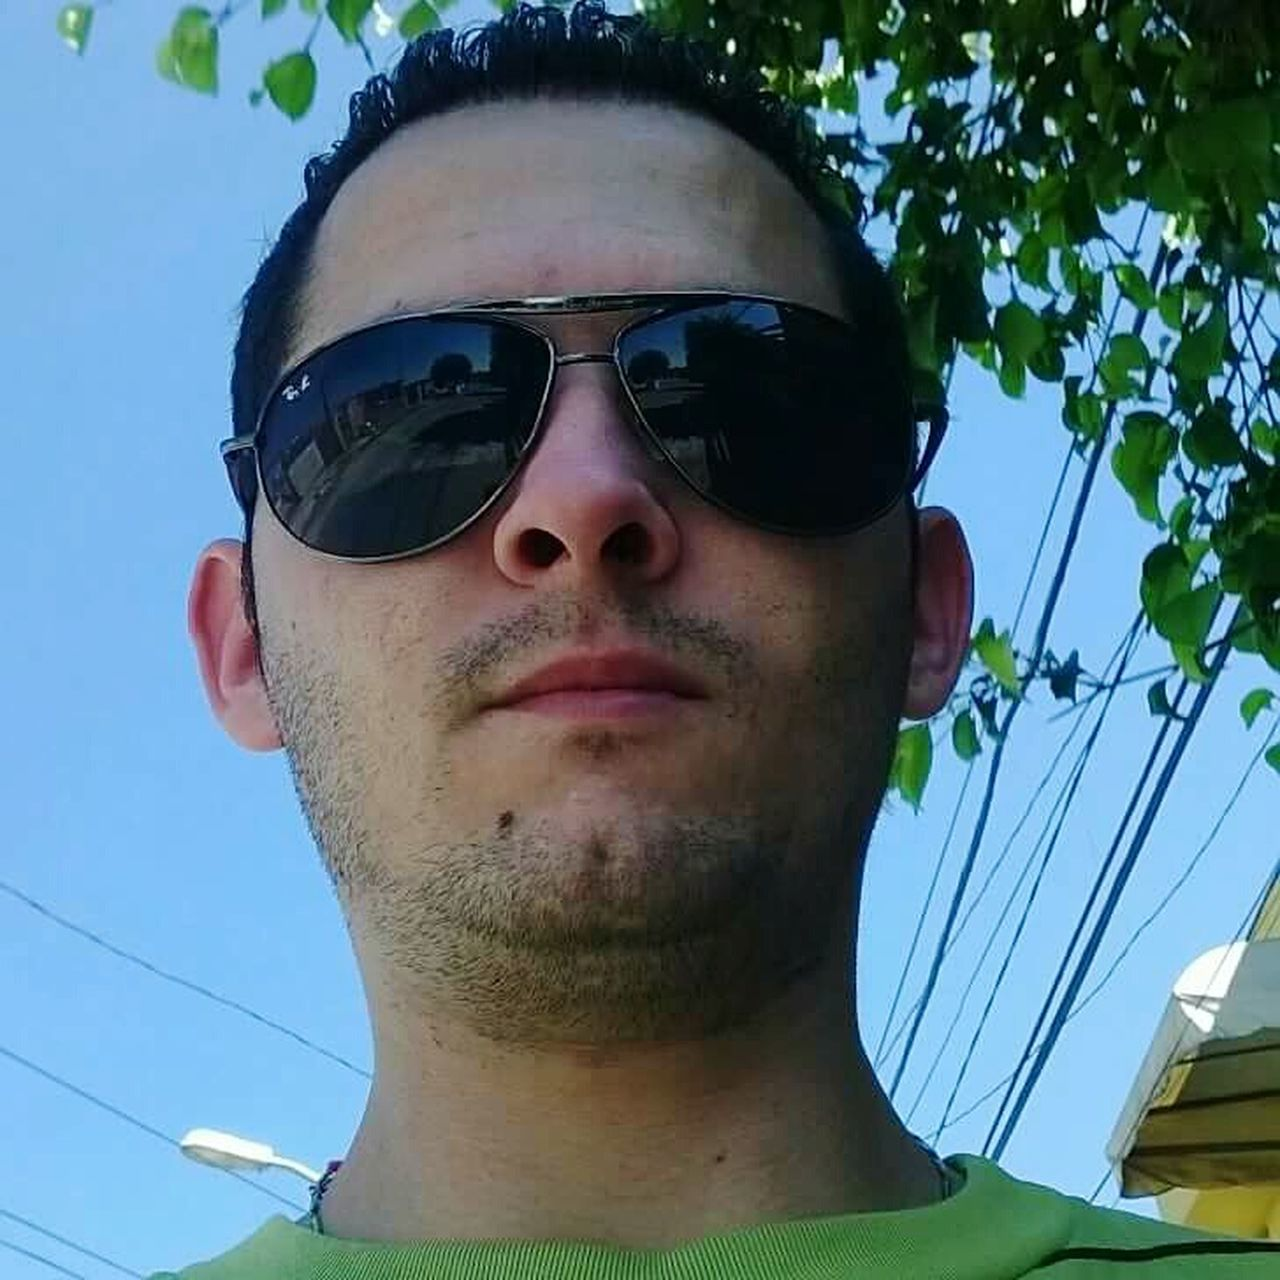 sunglasses, day, real people, portrait, looking at camera, outdoors, one person, lifestyles, young adult, tree, close-up, sky